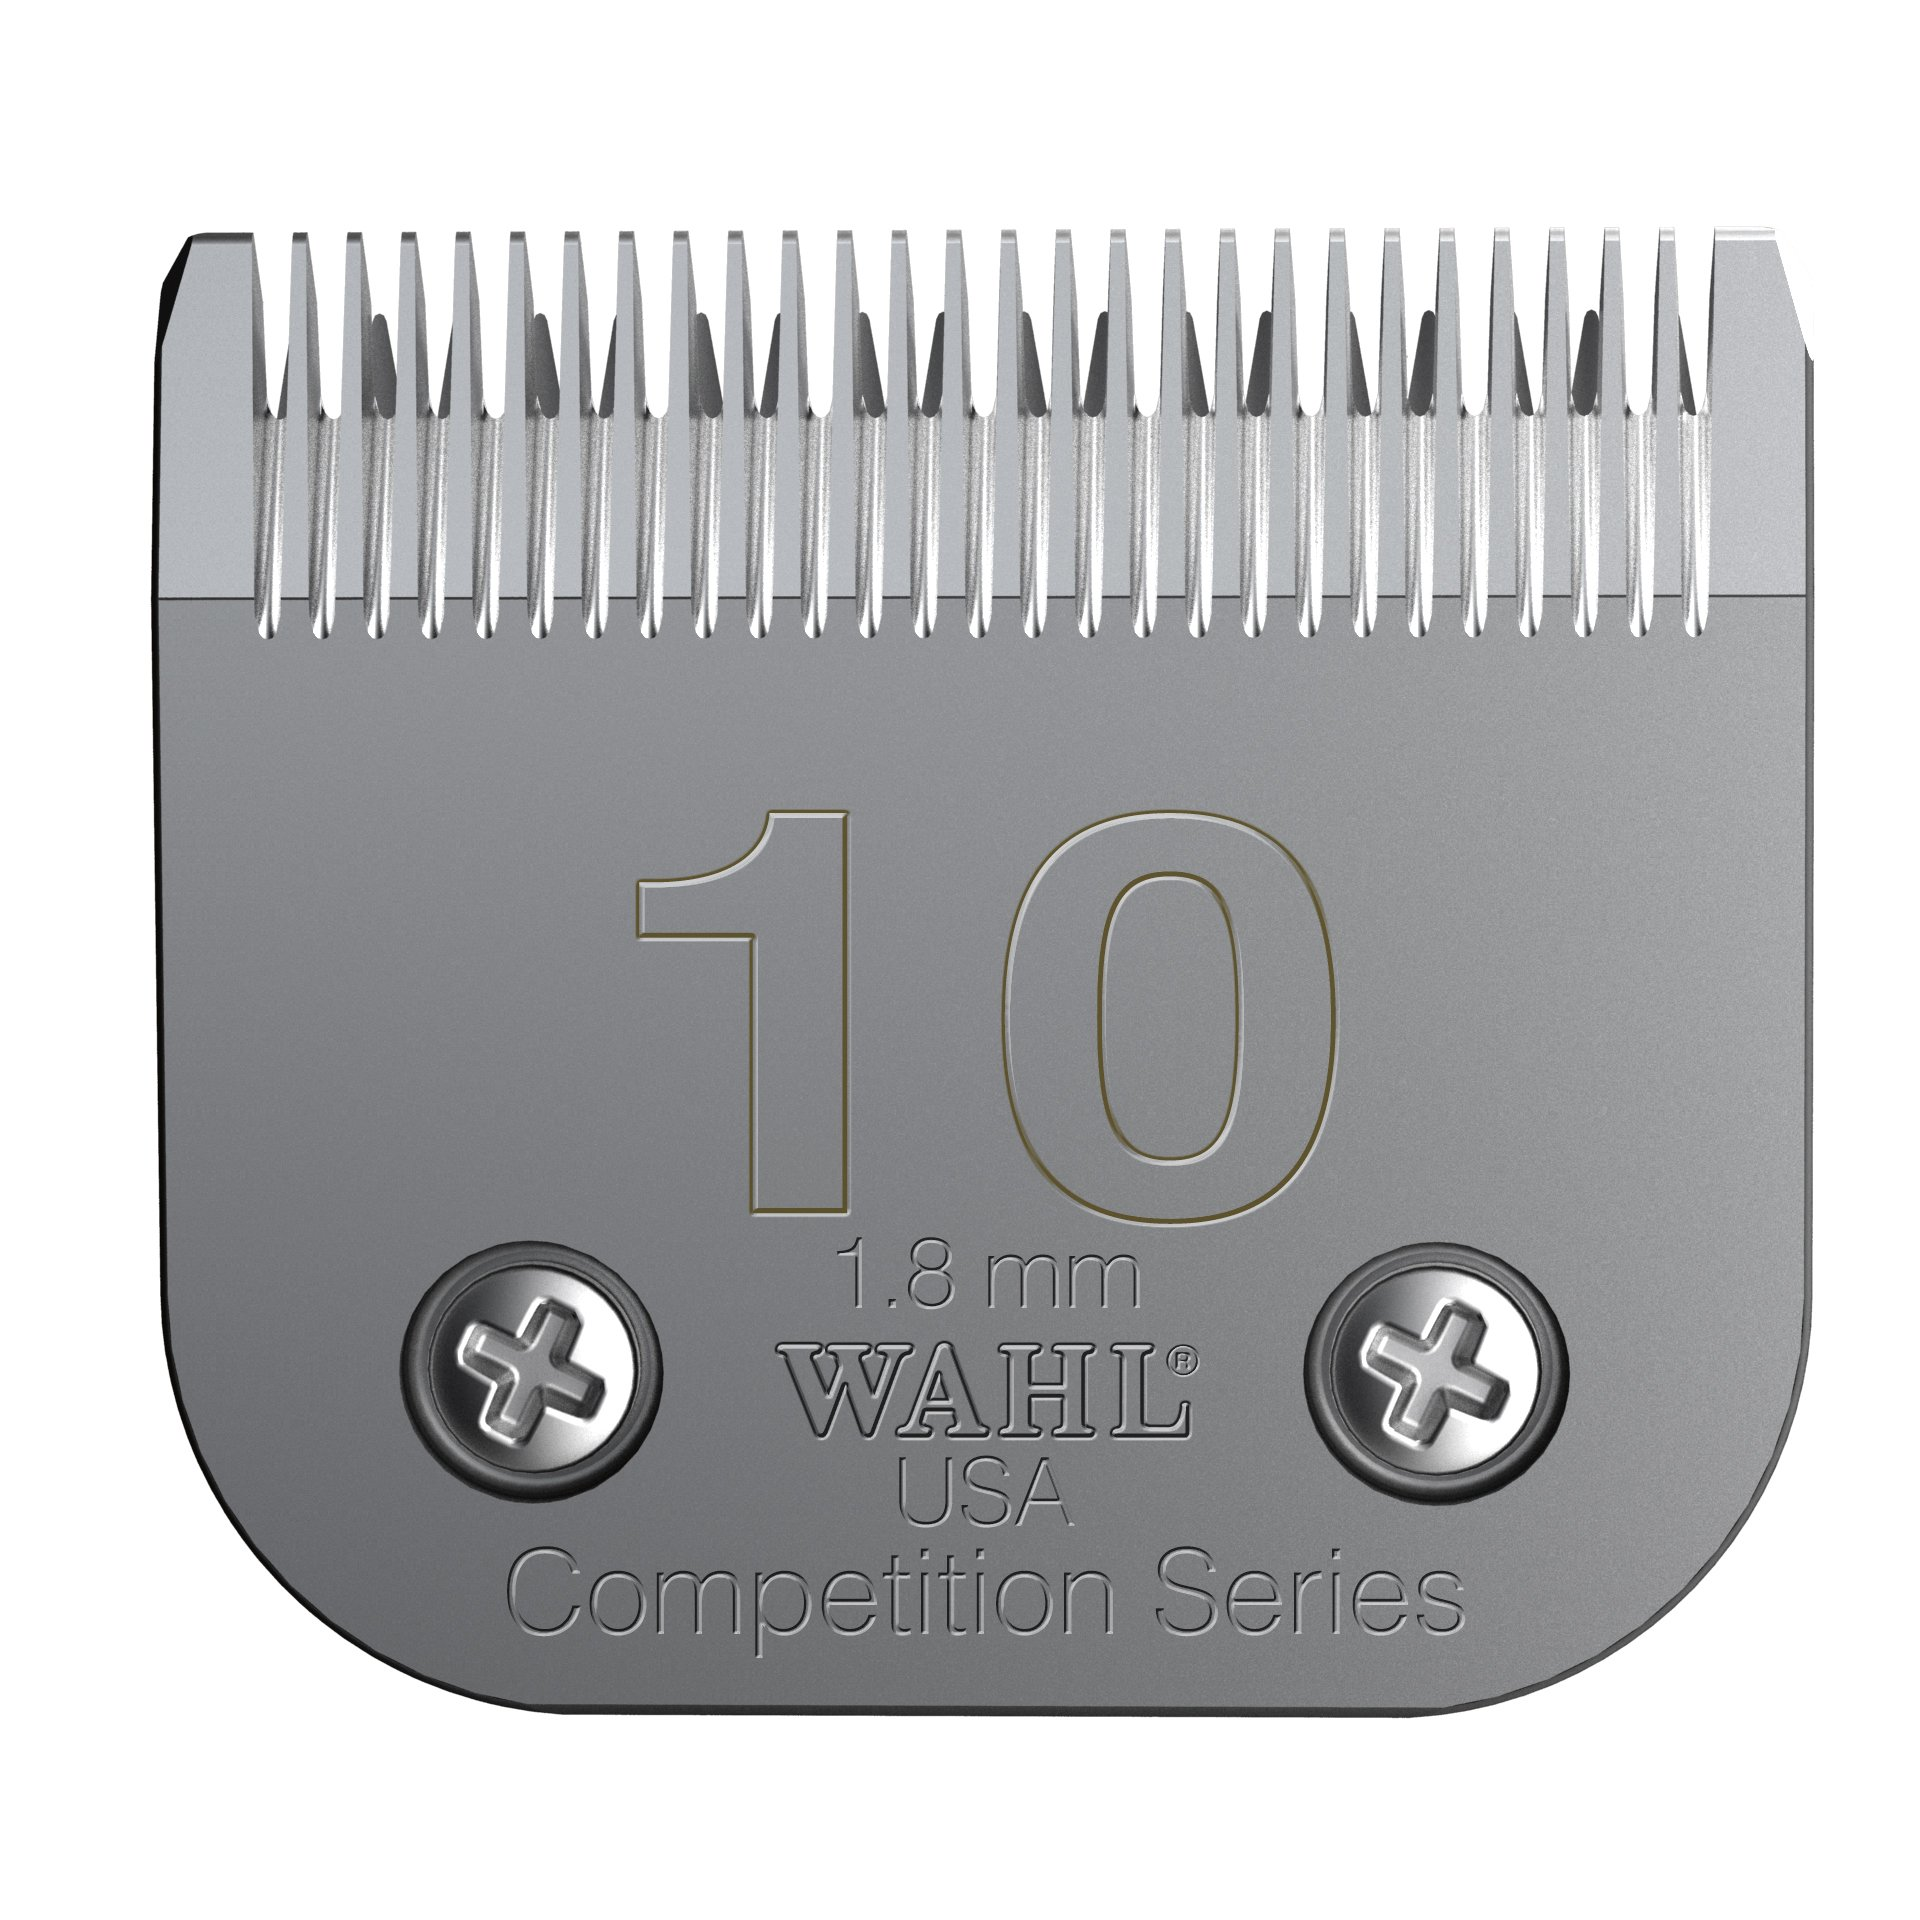 Wahl Professional Animal #10 Medium Competition Series Detachable Blade with 1/16-Inch Cut Length (#2358-100) by Wahl Professional Animal